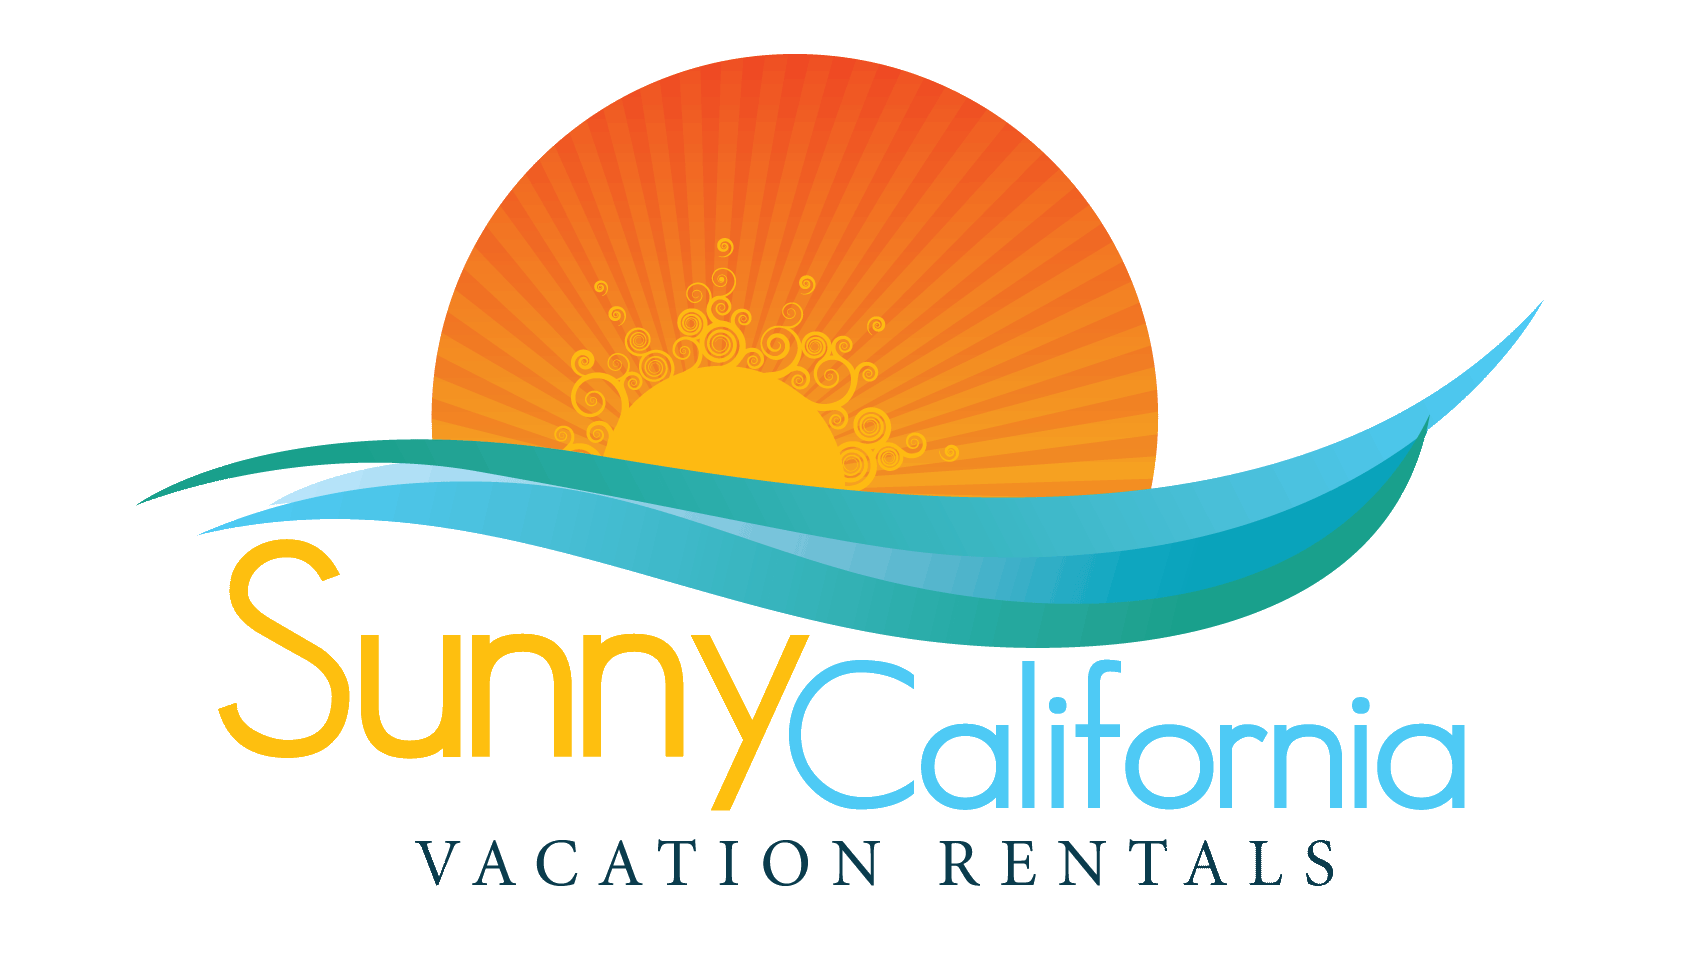 Sunny California Vacation Rentals